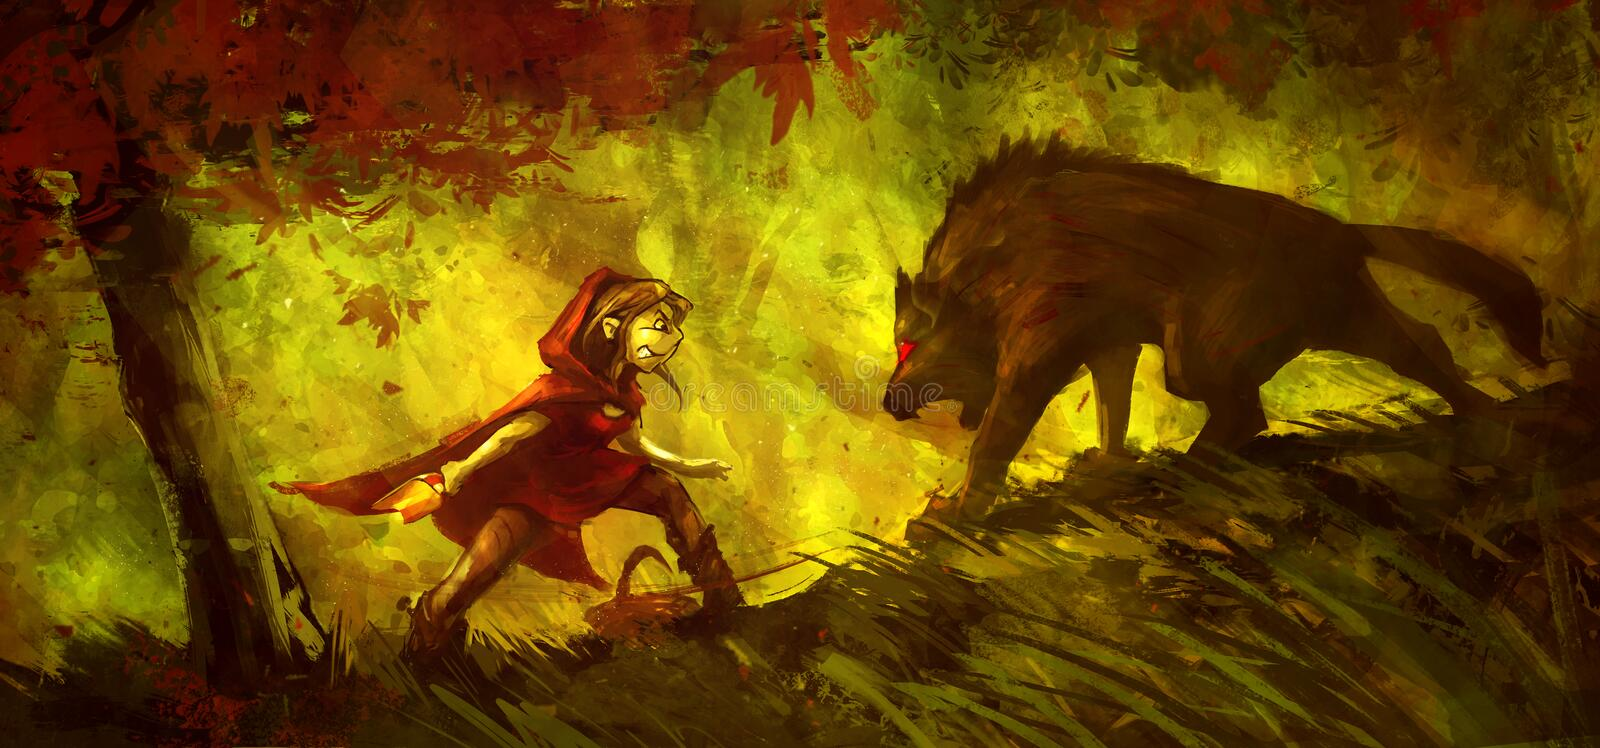 Little Red Riding Hood fighting with a wolf in the forest. Funny color painting royalty free illustration